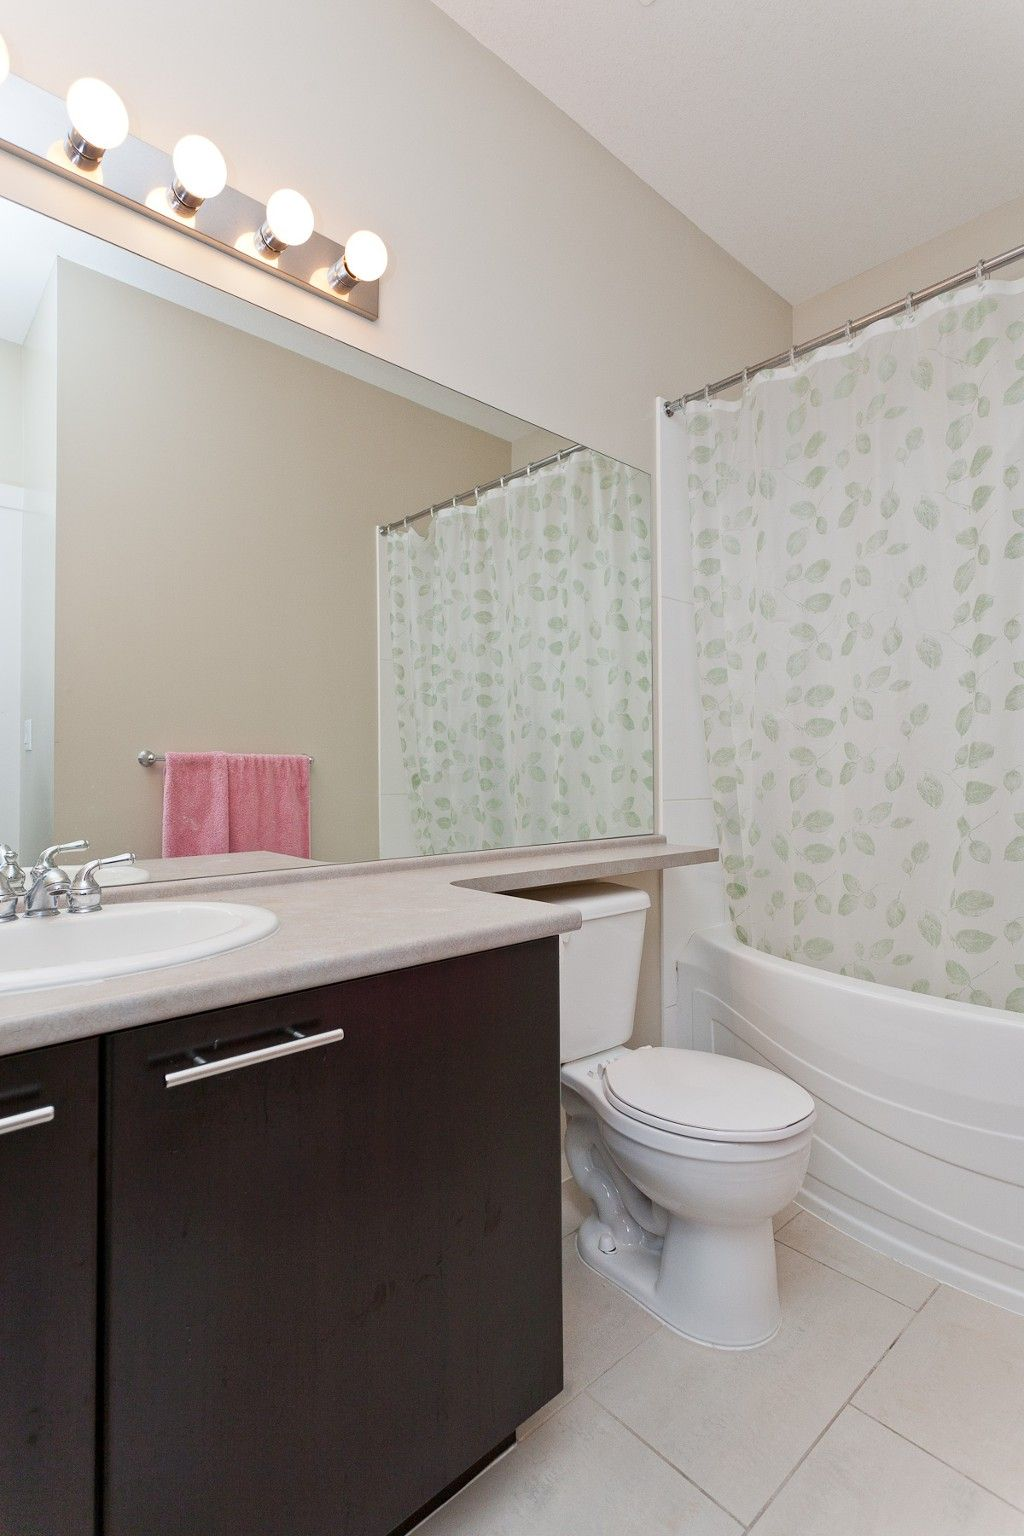 """Photo 13: Photos: 514 9319 UNIVERSITY Crescent in Burnaby: Simon Fraser Univer. Condo for sale in """"HARMONY AT THE HIGHLANDS"""" (Burnaby North)  : MLS®# V1009377"""